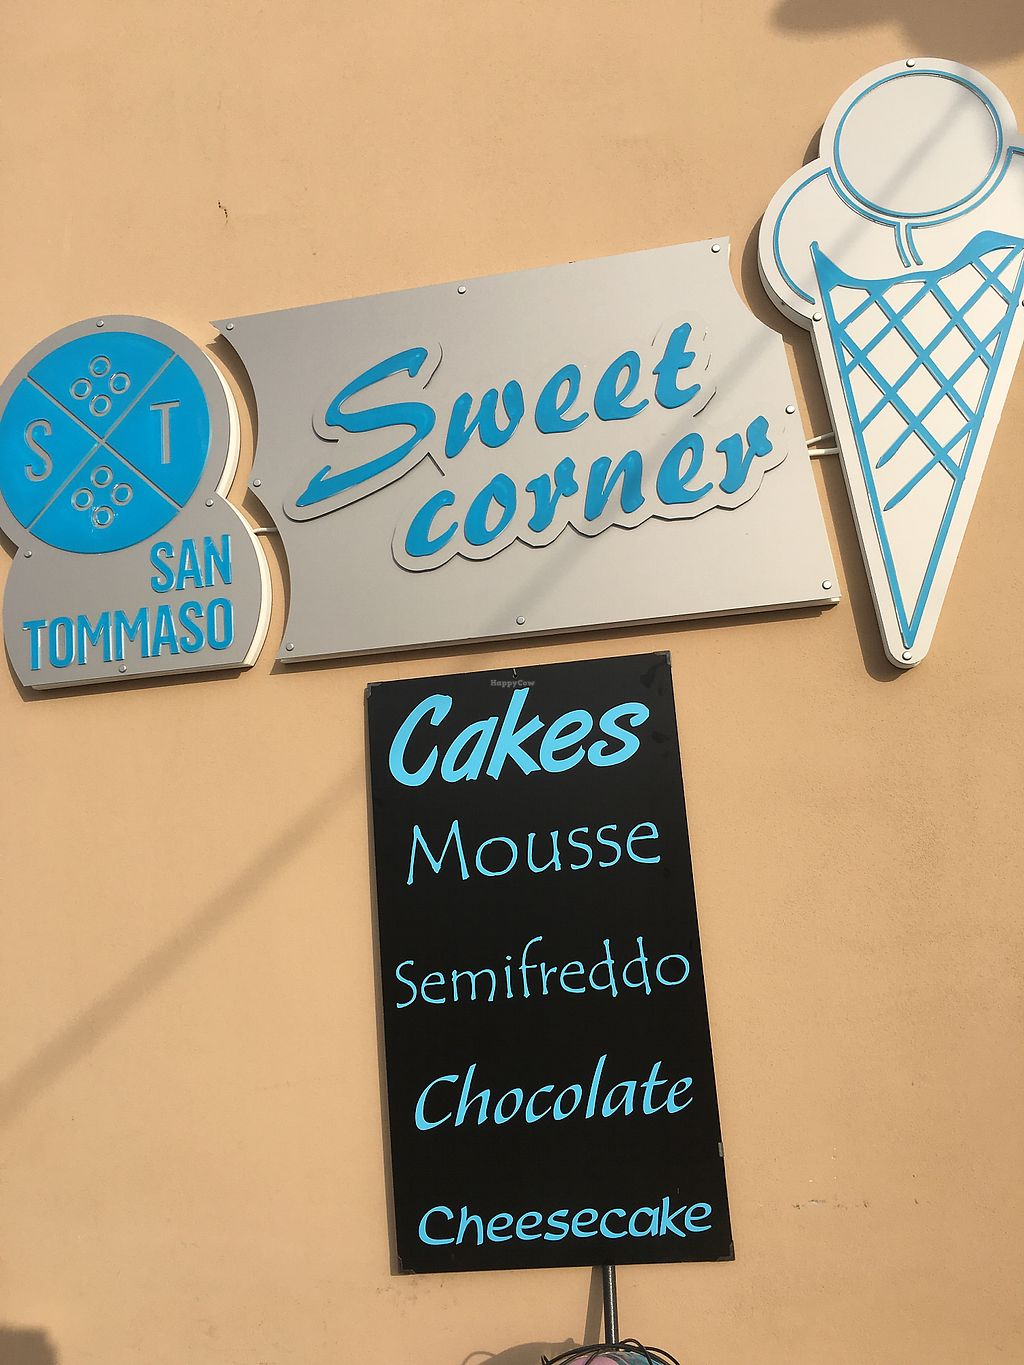 """Photo of Sweet Corner San Tommaso  by <a href=""""/members/profile/YousefR95"""">YousefR95</a> <br/>Sweet corner  <br/> August 28, 2017  - <a href='/contact/abuse/image/94293/298352'>Report</a>"""